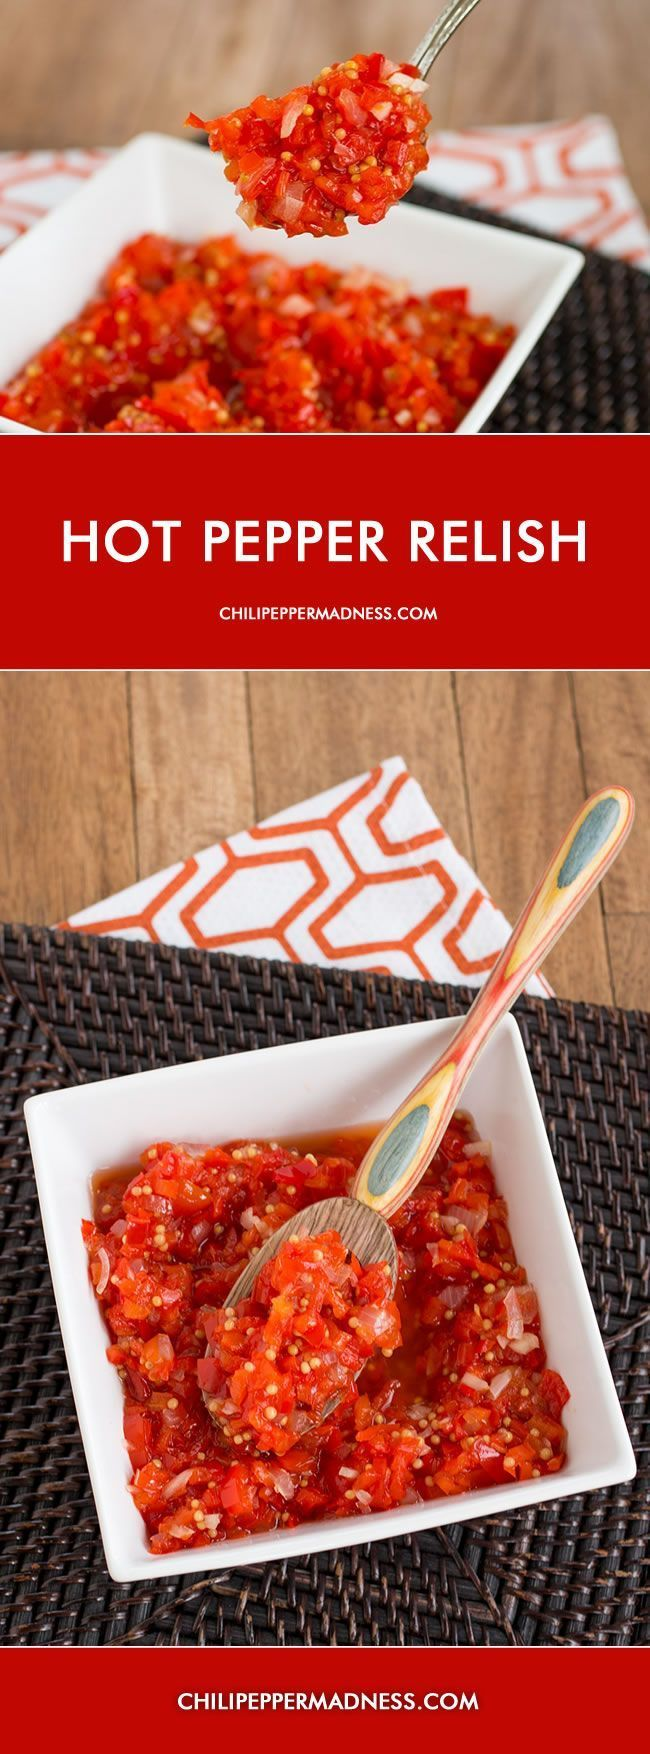 Hot Pepper Relish - This very simple recipe for pickled pepper relish is great for any type of food you can prepare on the grill. We're talking steaks, chicken breasts, burgers, brats, even the good old hot dog. It's one of those wonder condiments that go